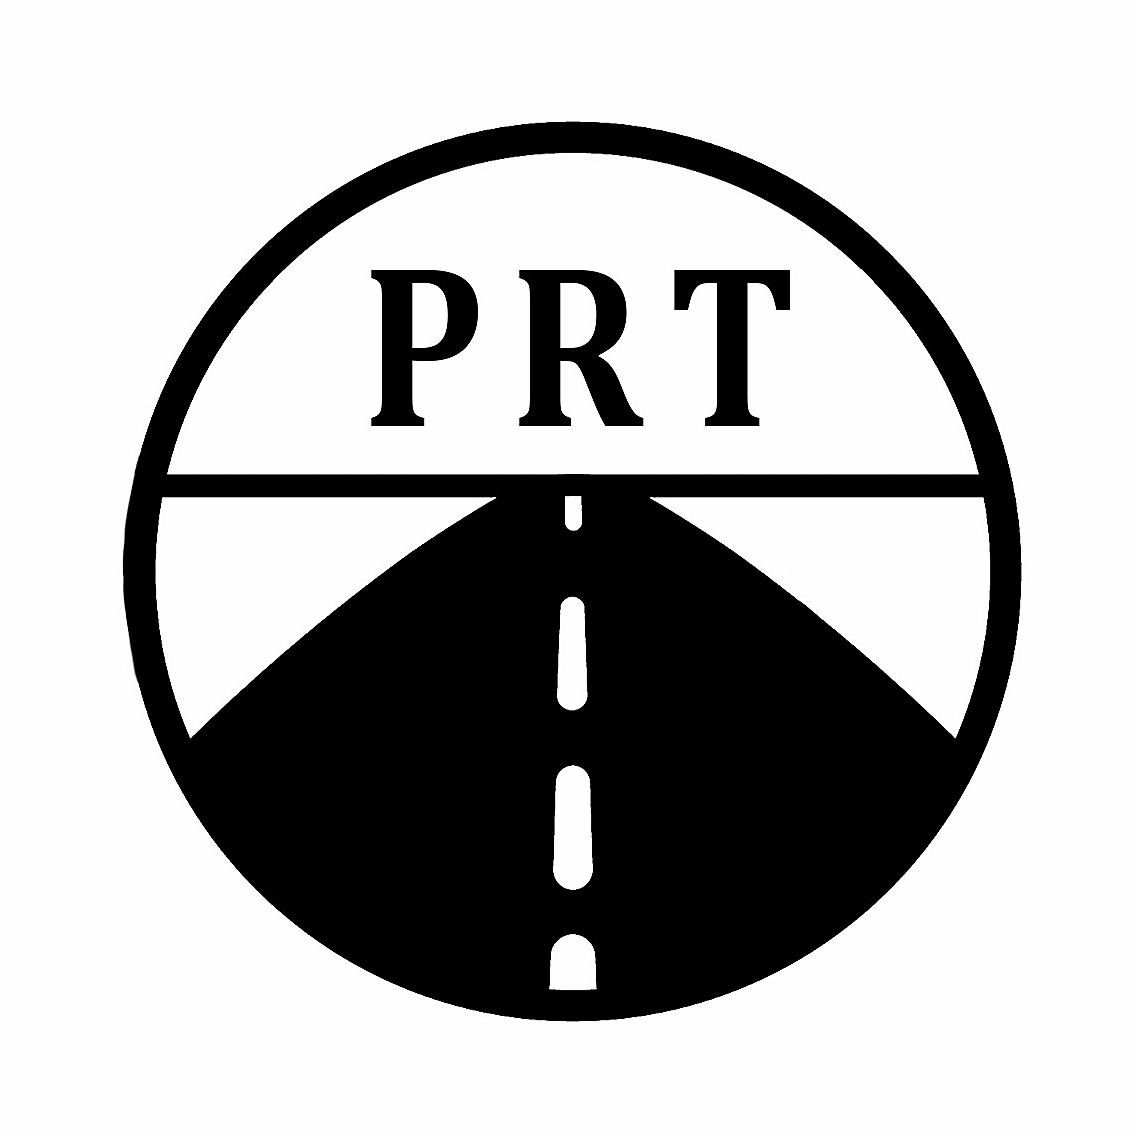 Project Road Training Llc For Pmp Exam Prep